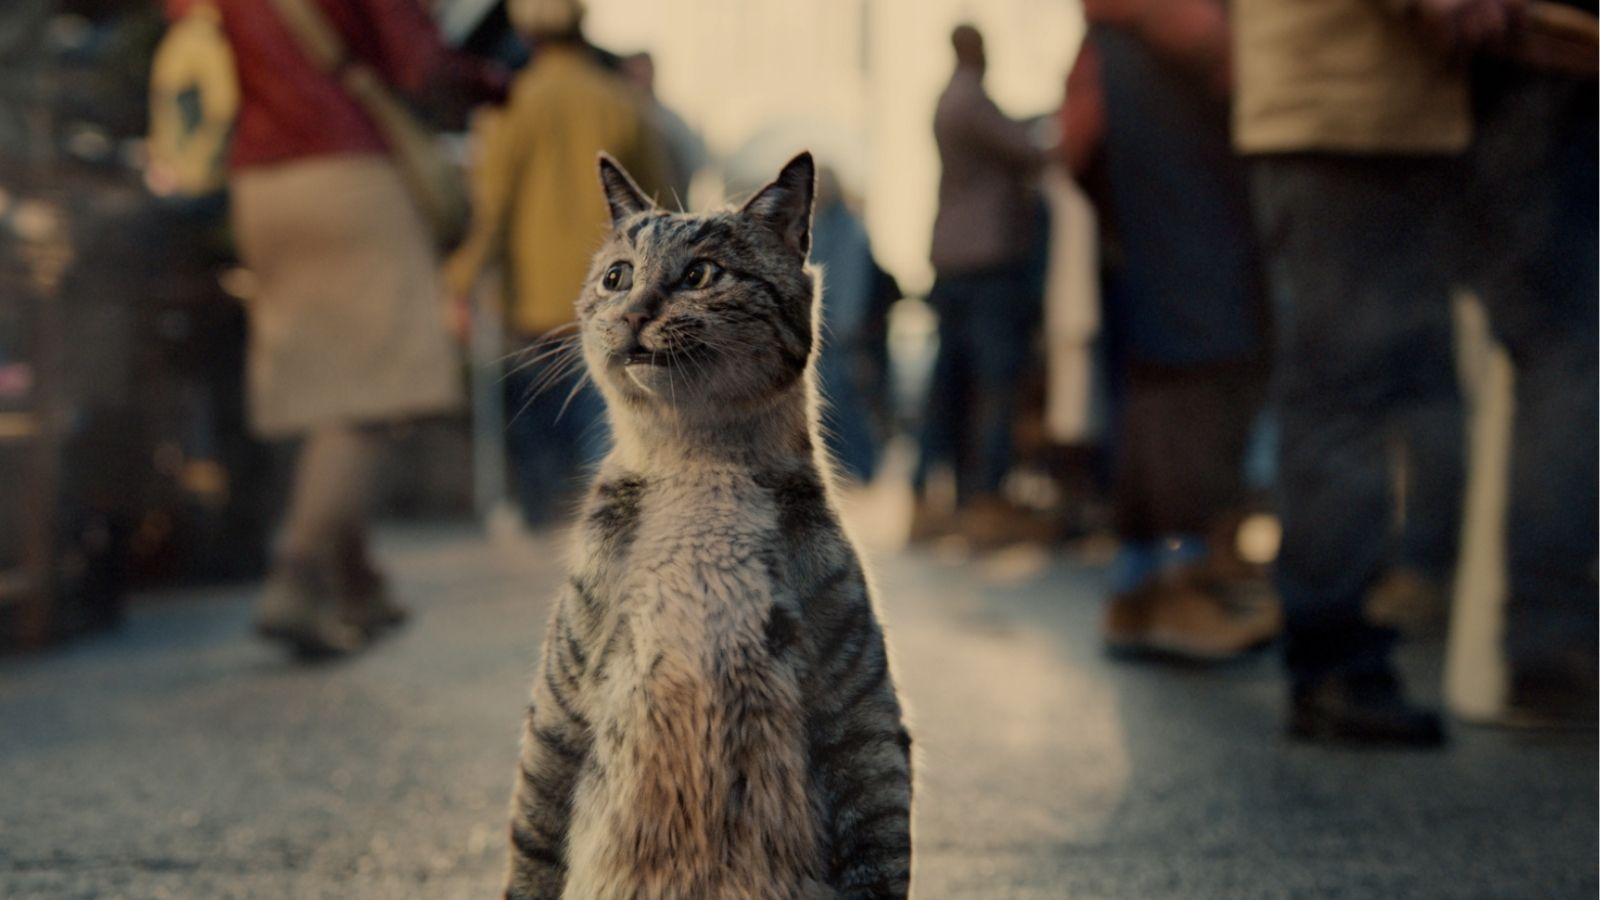 Cat walks on hind legs with confidence through market